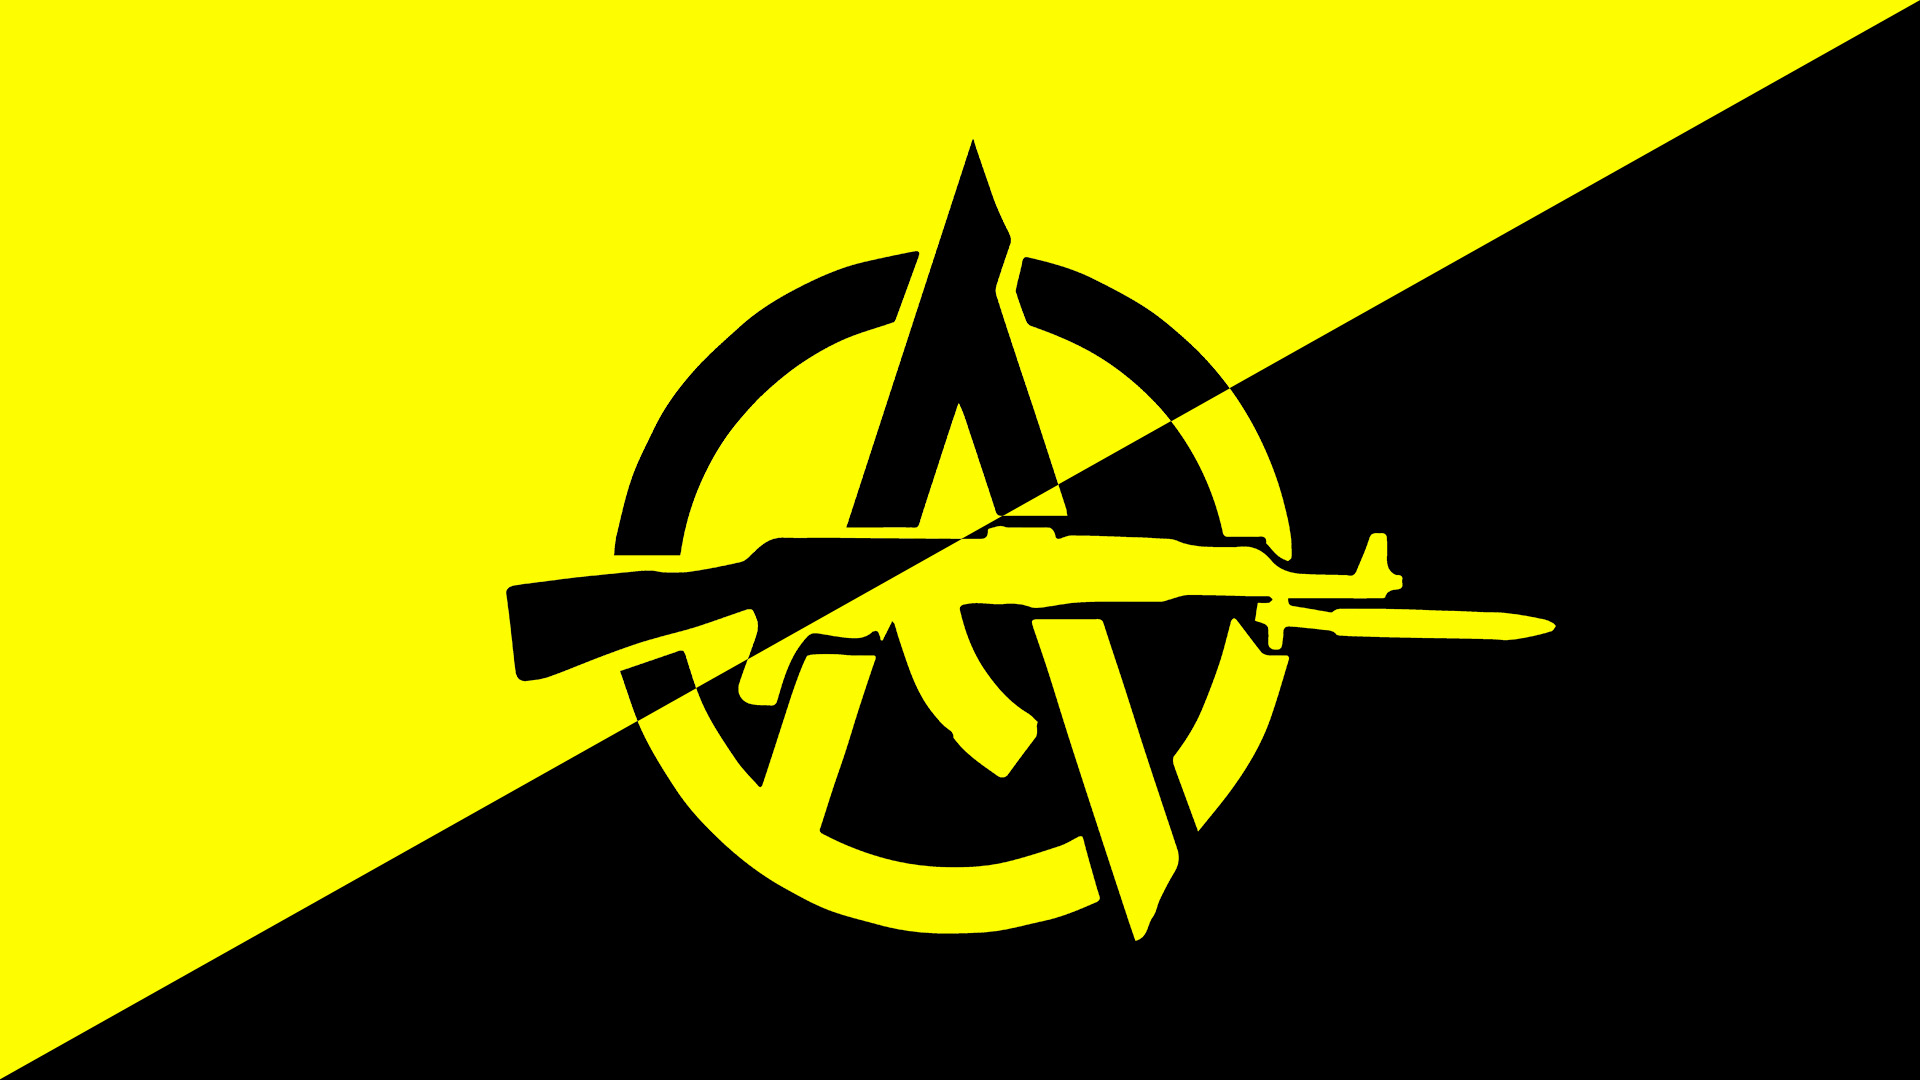 Anarcho capitalism wallpaper by appriweb on deviantart anarcho capitalism wallpaper by appriweb anarcho capitalism wallpaper by appriweb buycottarizona Gallery